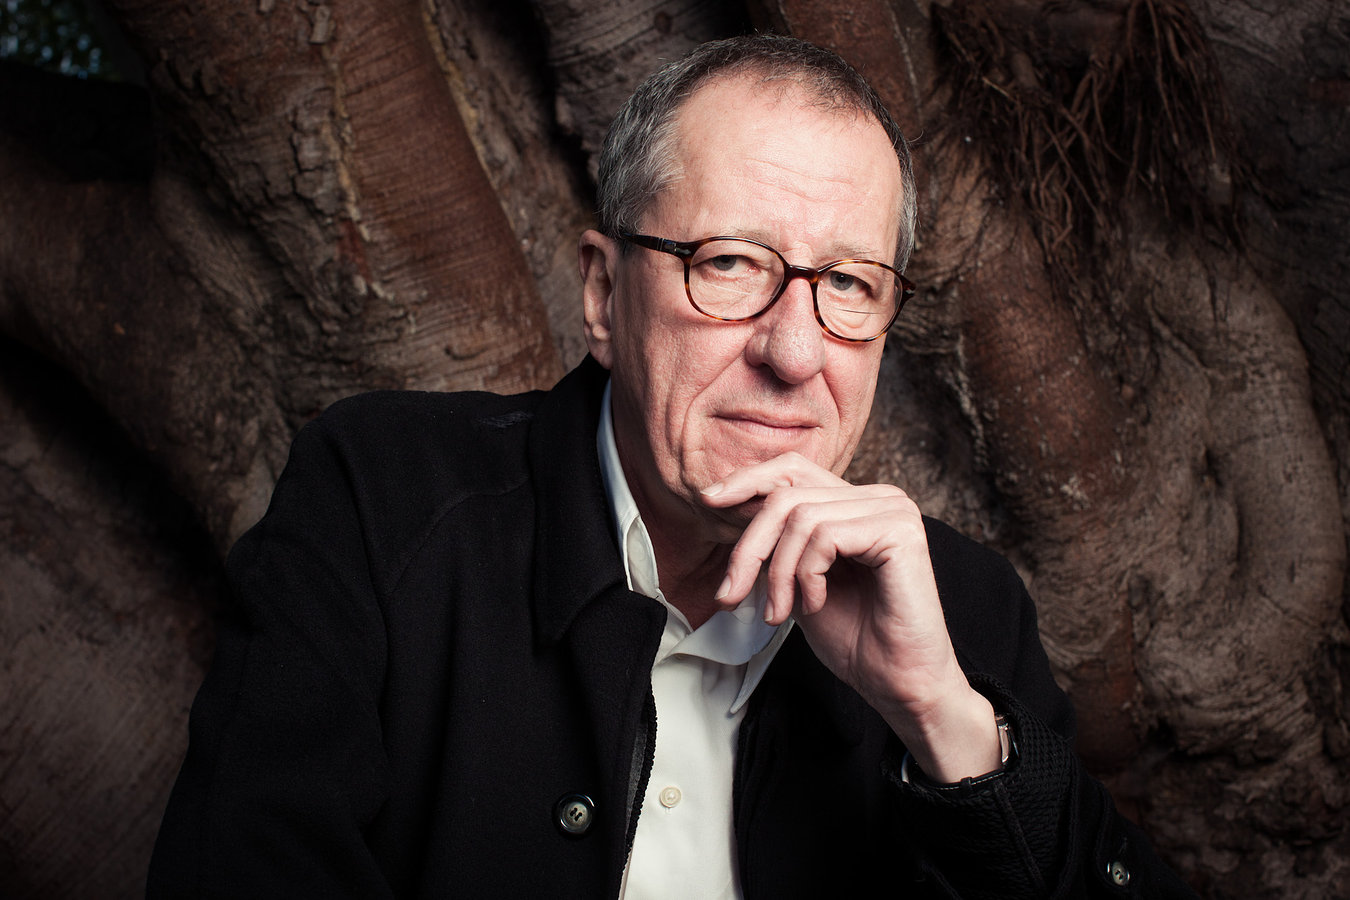 geoffrey rush game of thrones